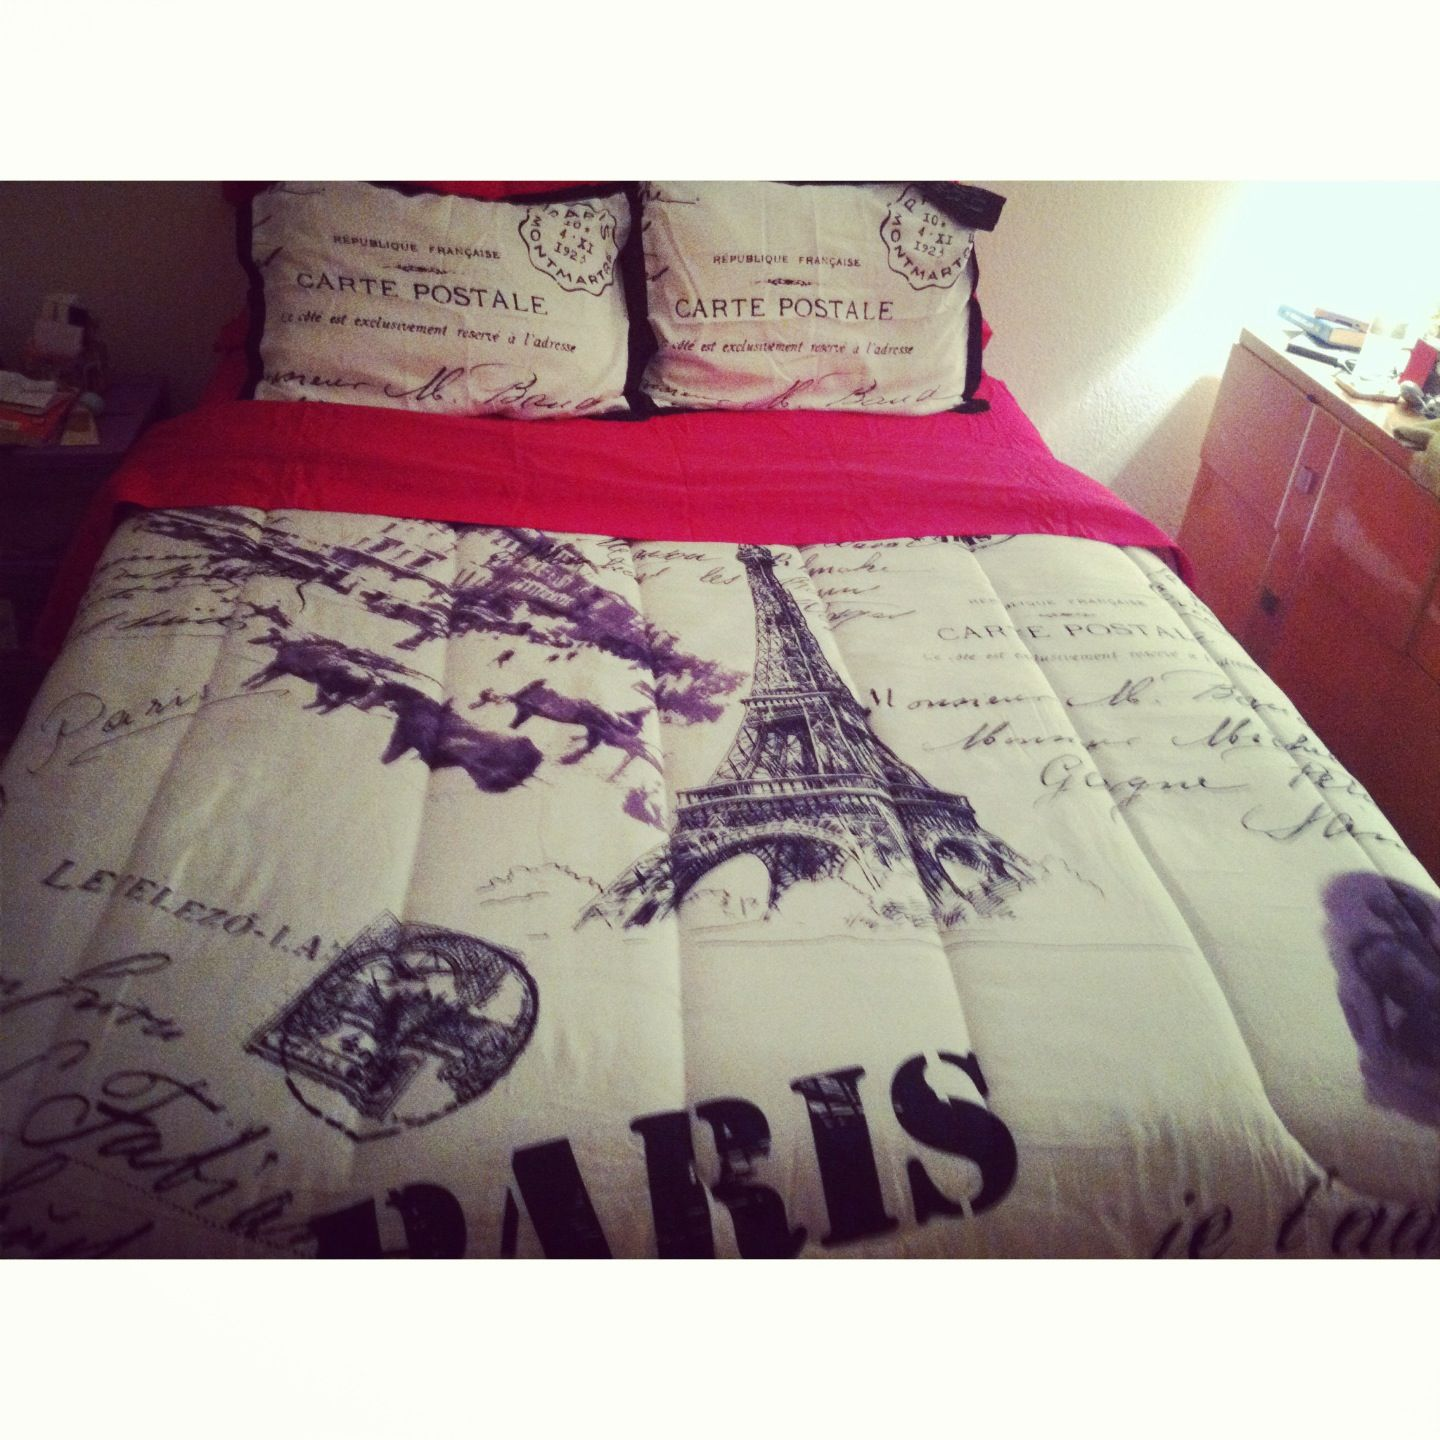 My new Paris bedspread from Anna s Linen Pink sheets are from